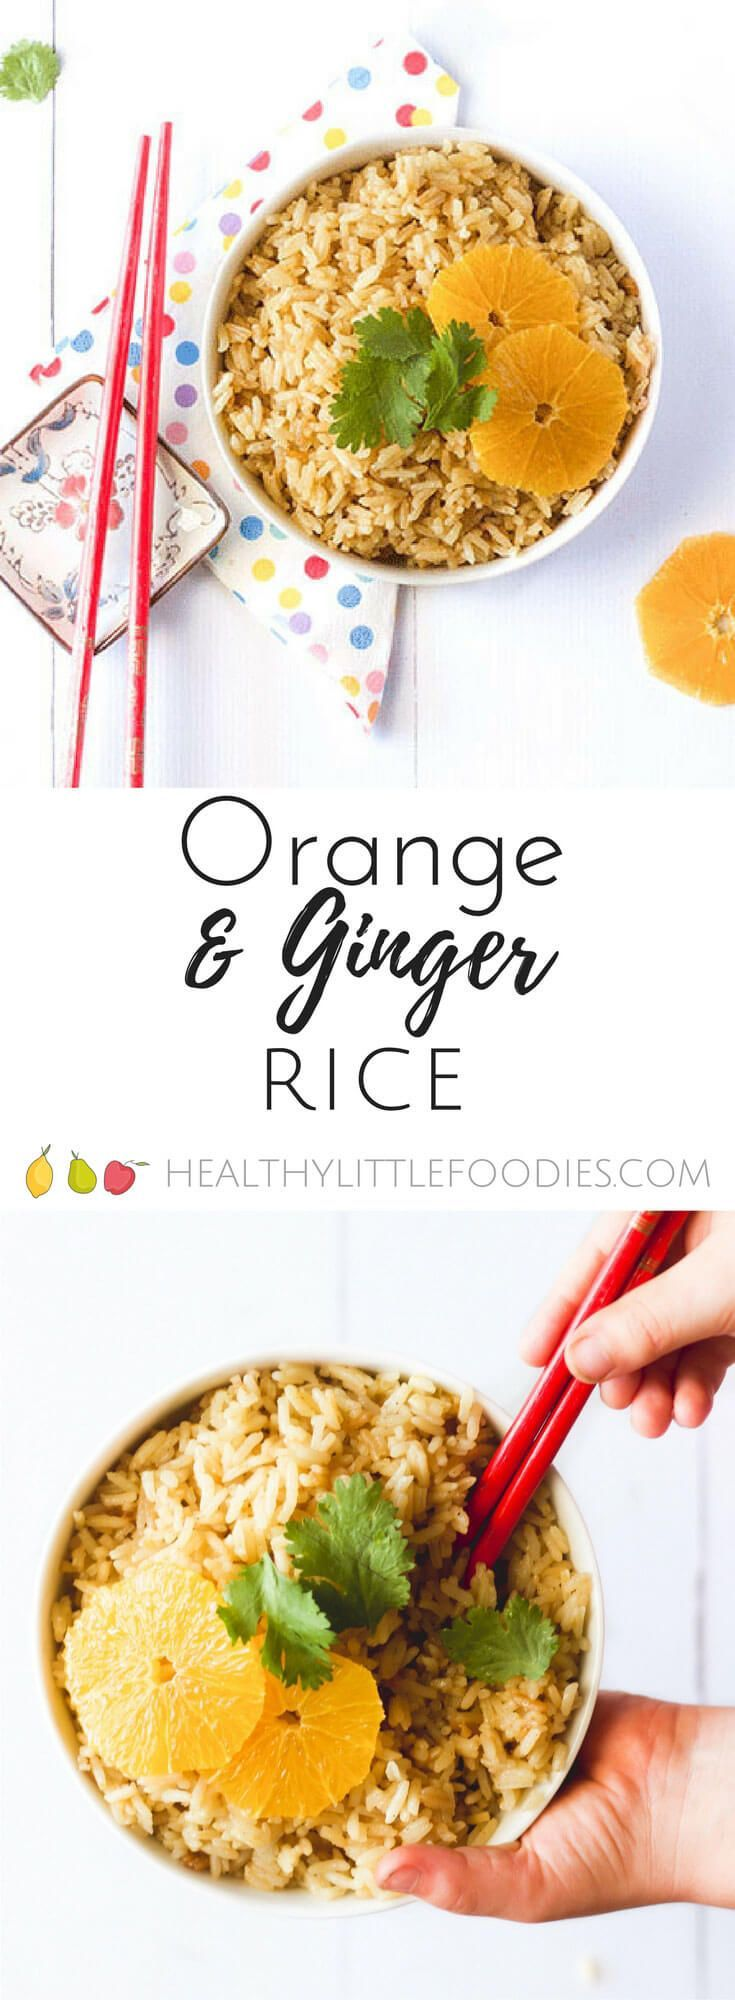 Orange ginger rice. A great side dish for kids. Rice cooked with orange, ginger and cardamom via @hlittlefoodies